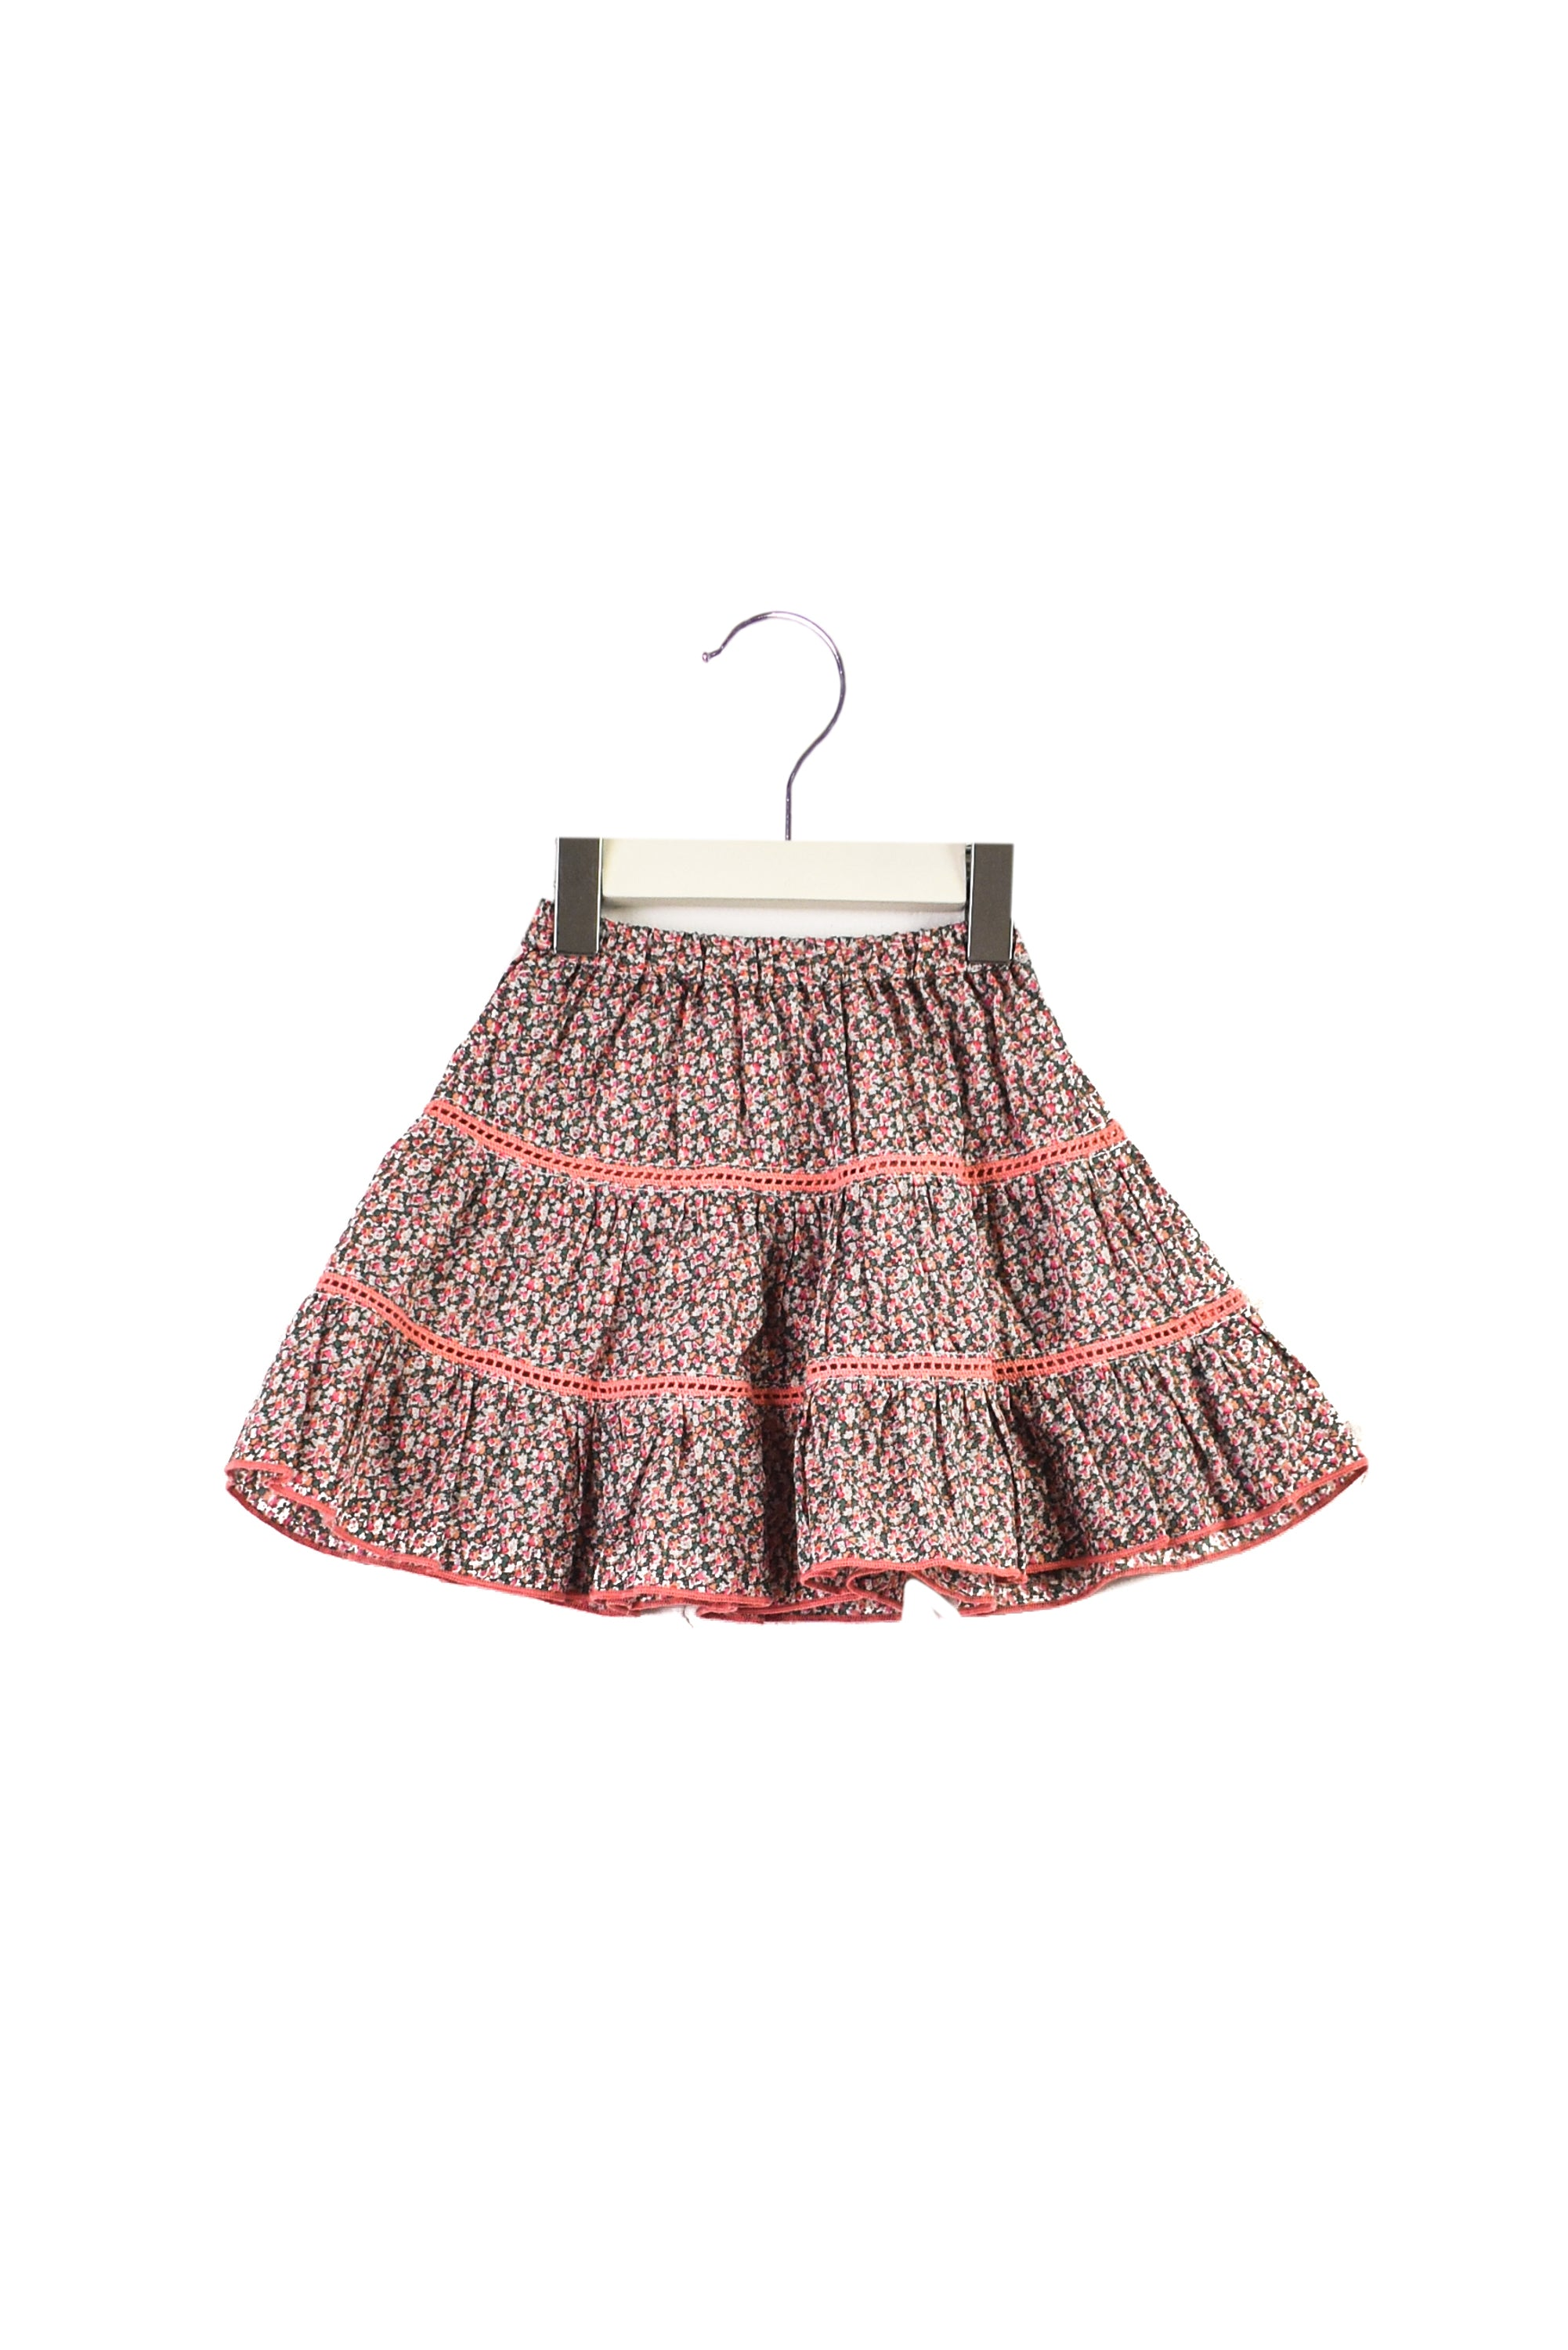 10031147 Little Mercerie Kids~Skirt 3T at Retykle